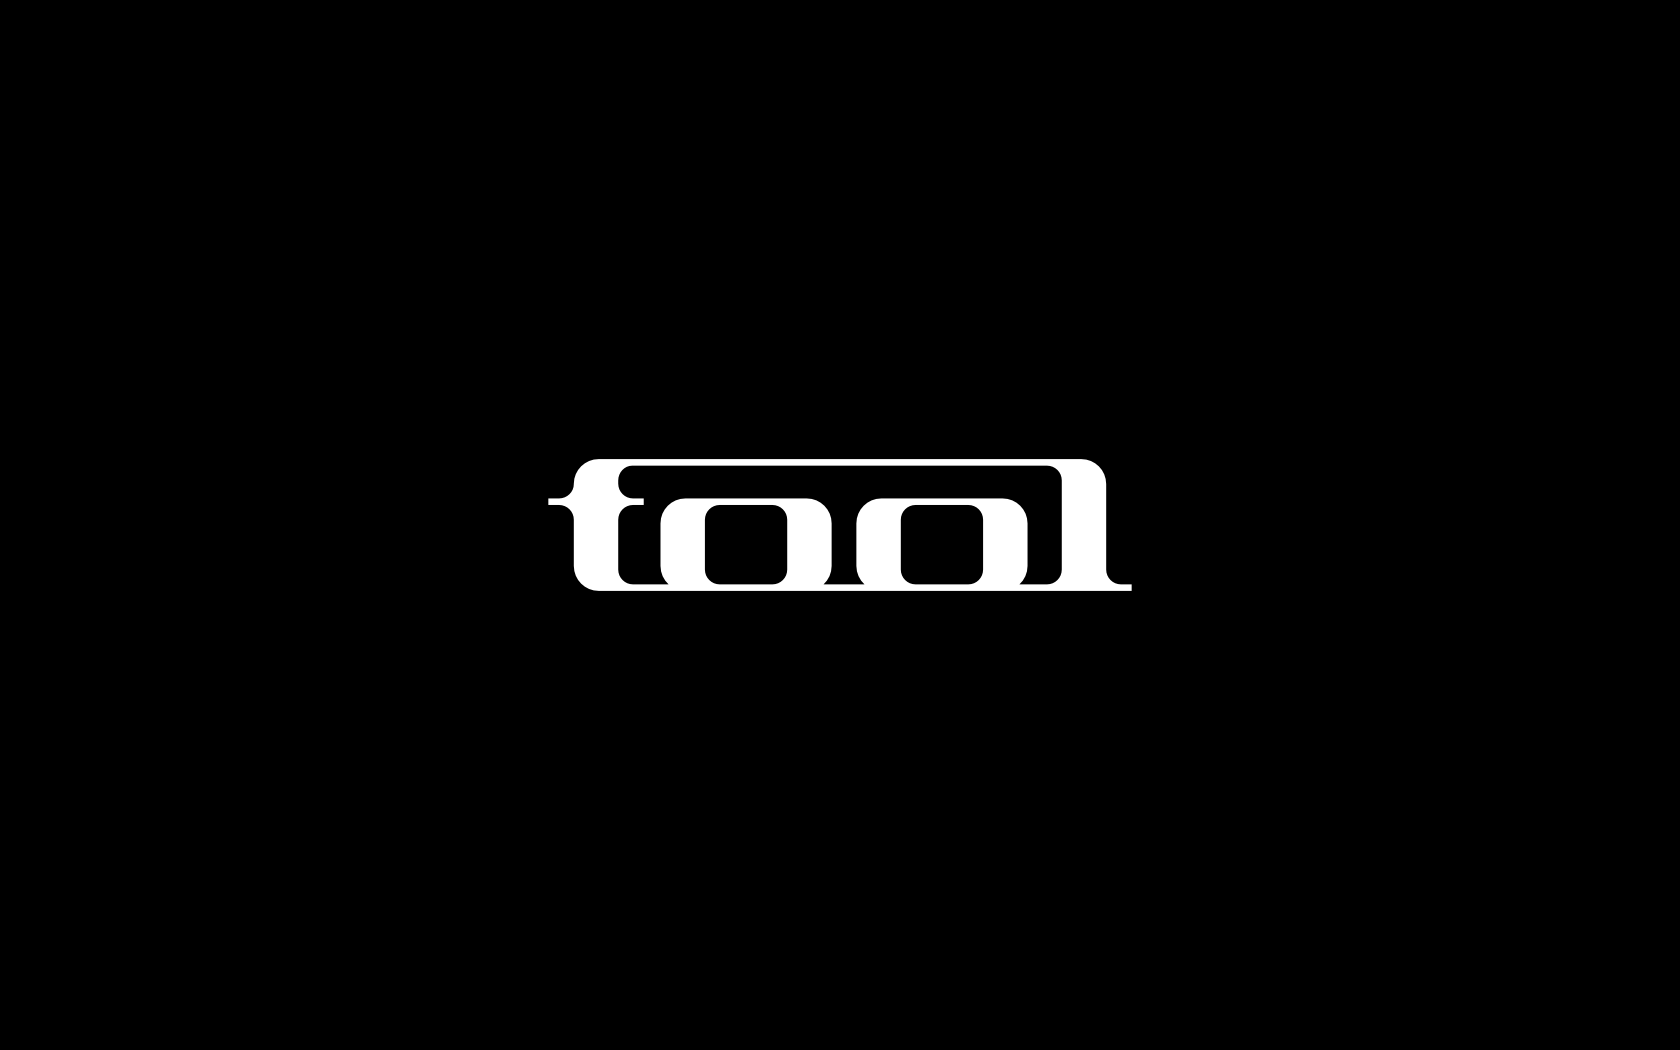 Tool band band logos special guest depeche mode music is life